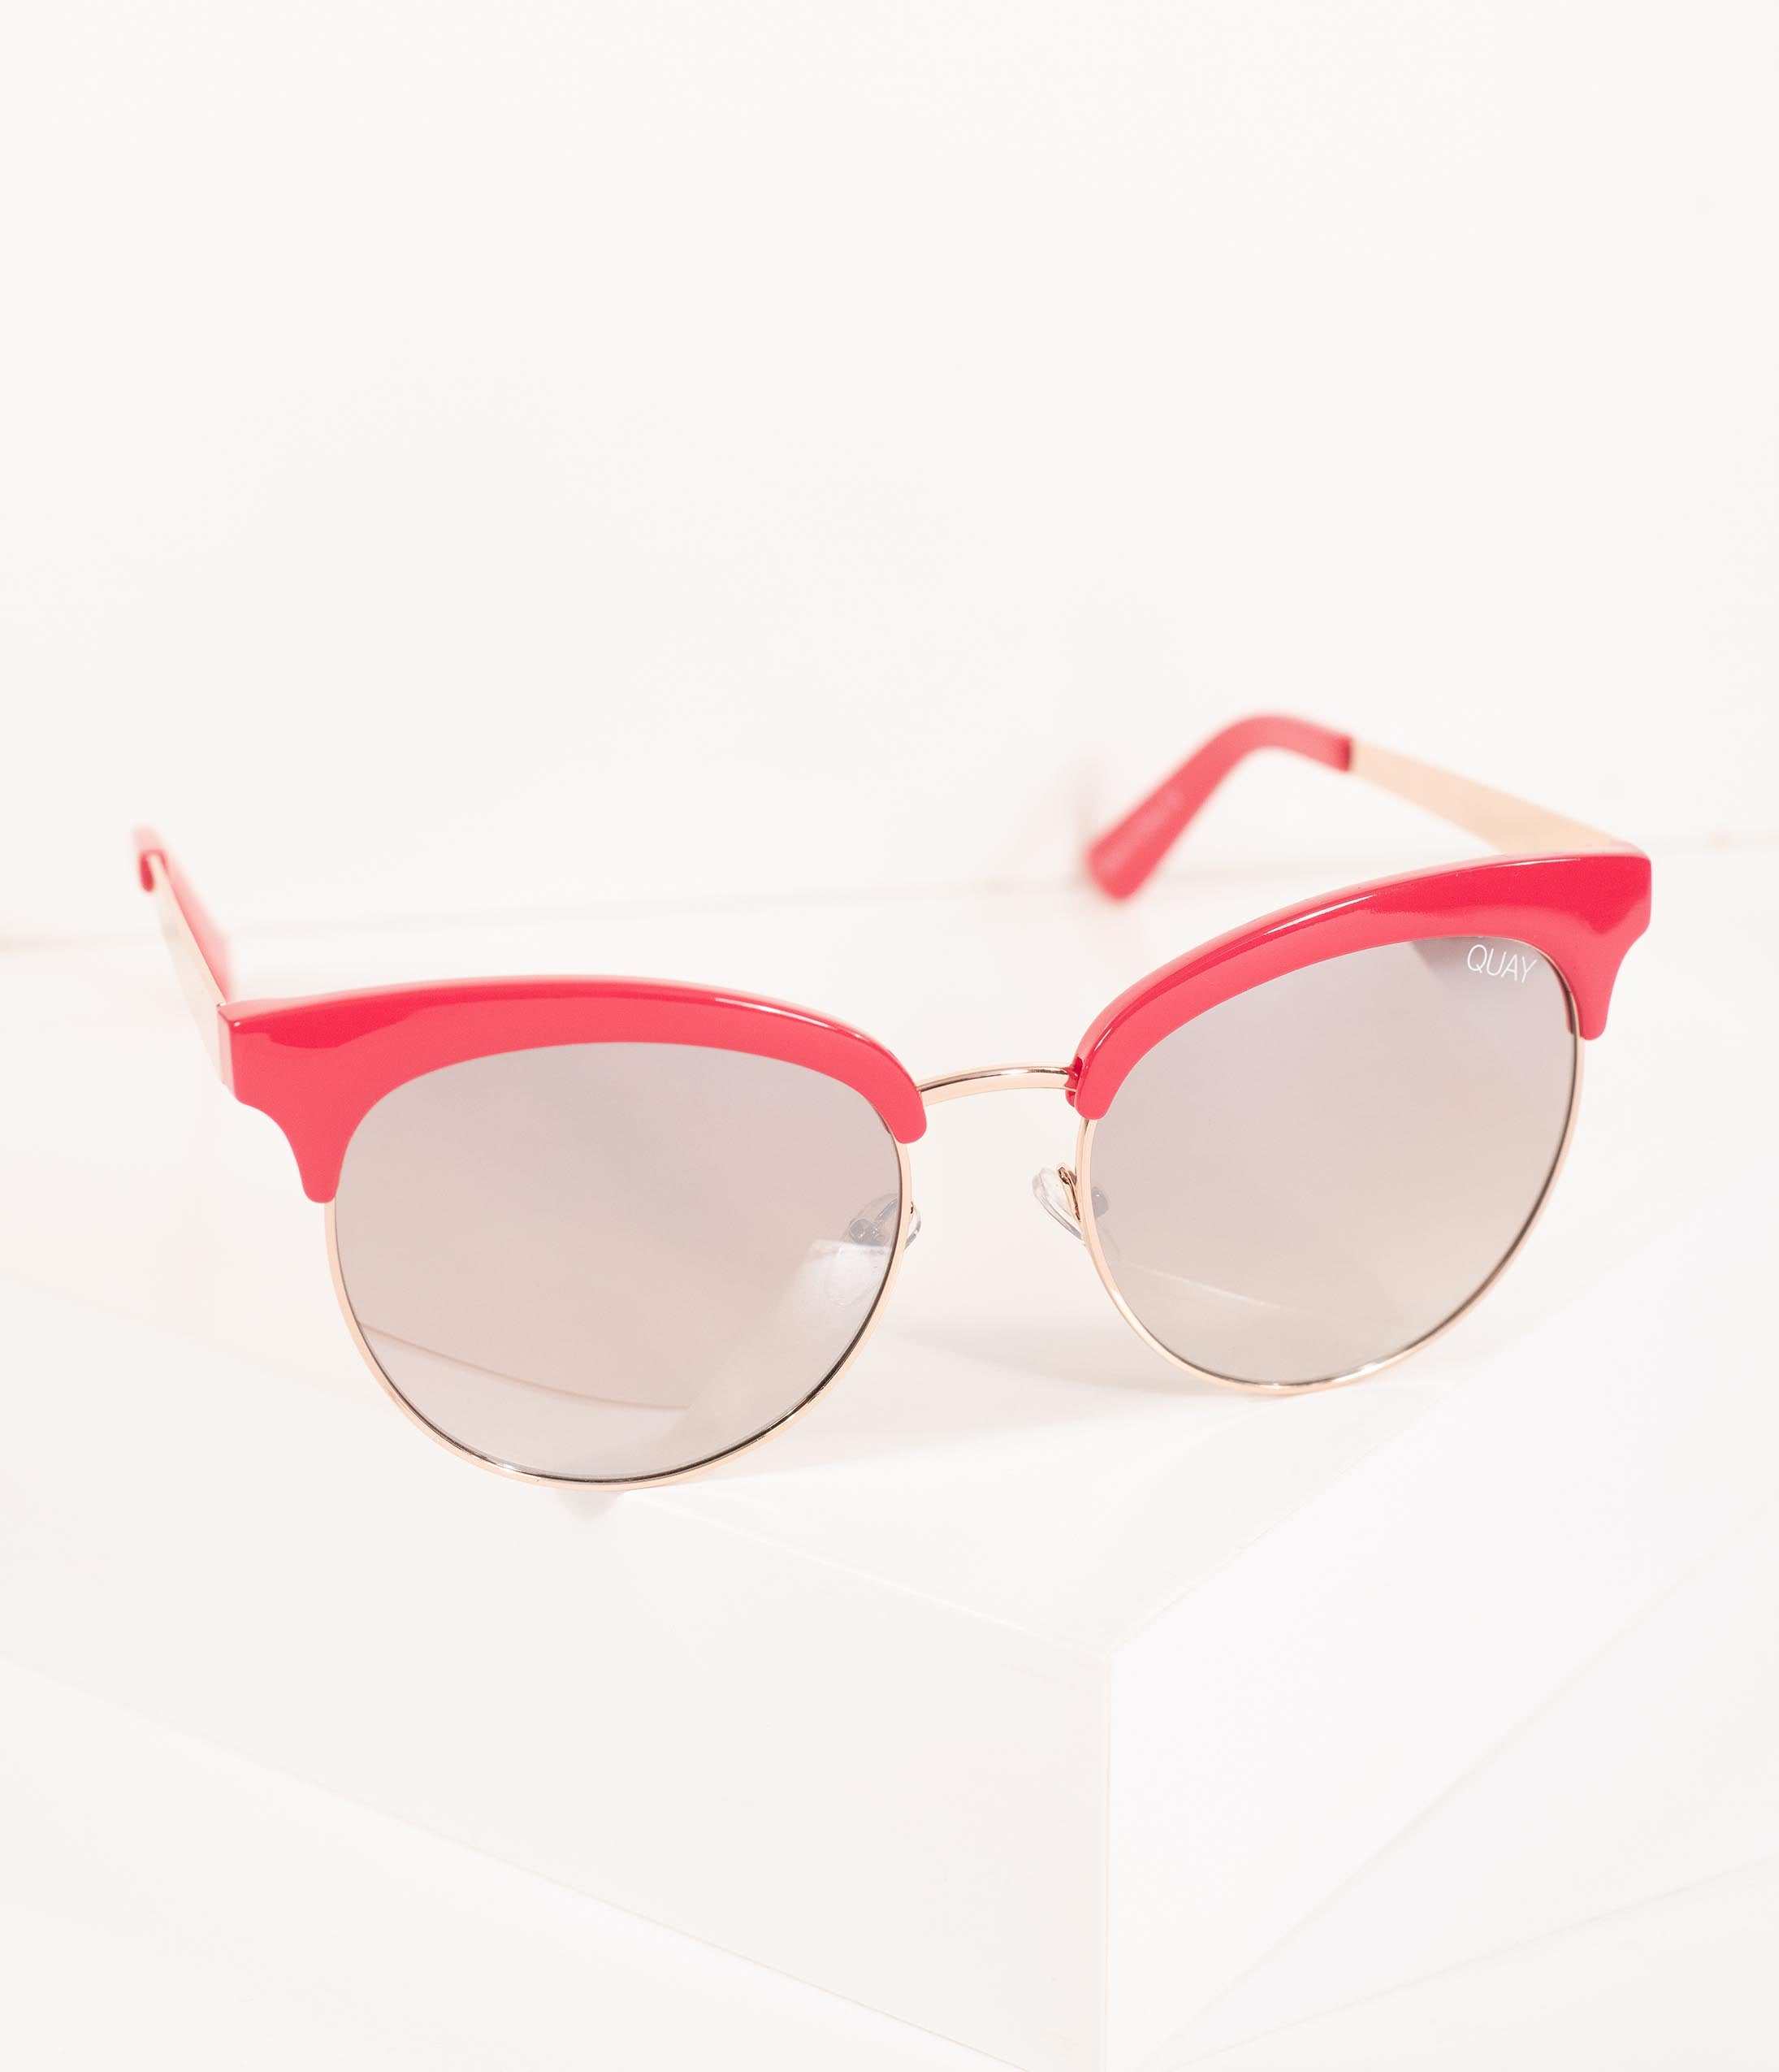 1960s Sunglasses | 70s Sunglasses, 70s Glasses Quay Retro Style Red Cherry Cat Eye Sunglasses $60.00 AT vintagedancer.com